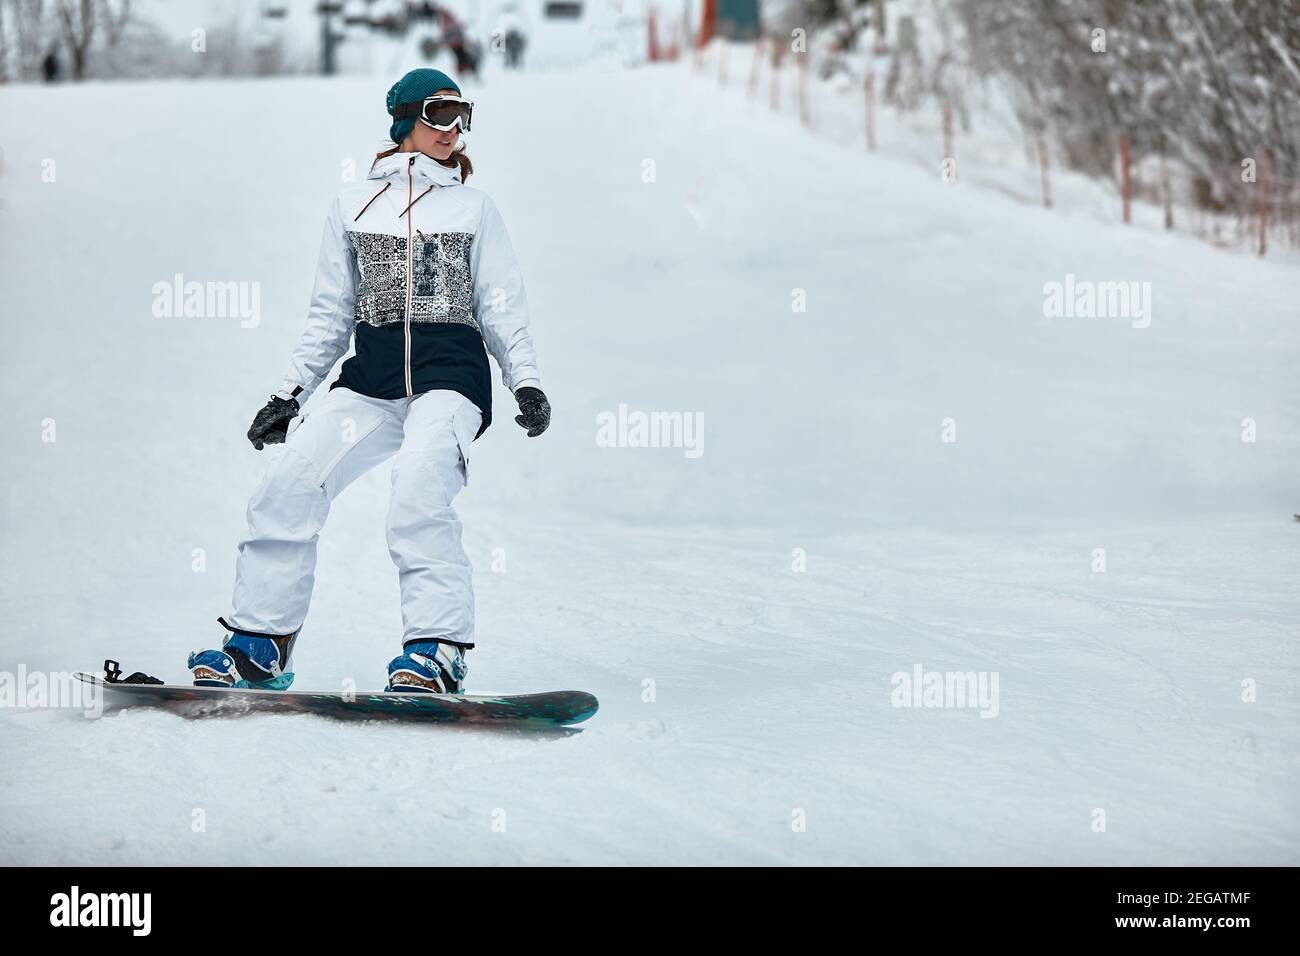 cheerful woman riding on snowboard in the mountains in winter. woman in white ski suit. Stock Photo